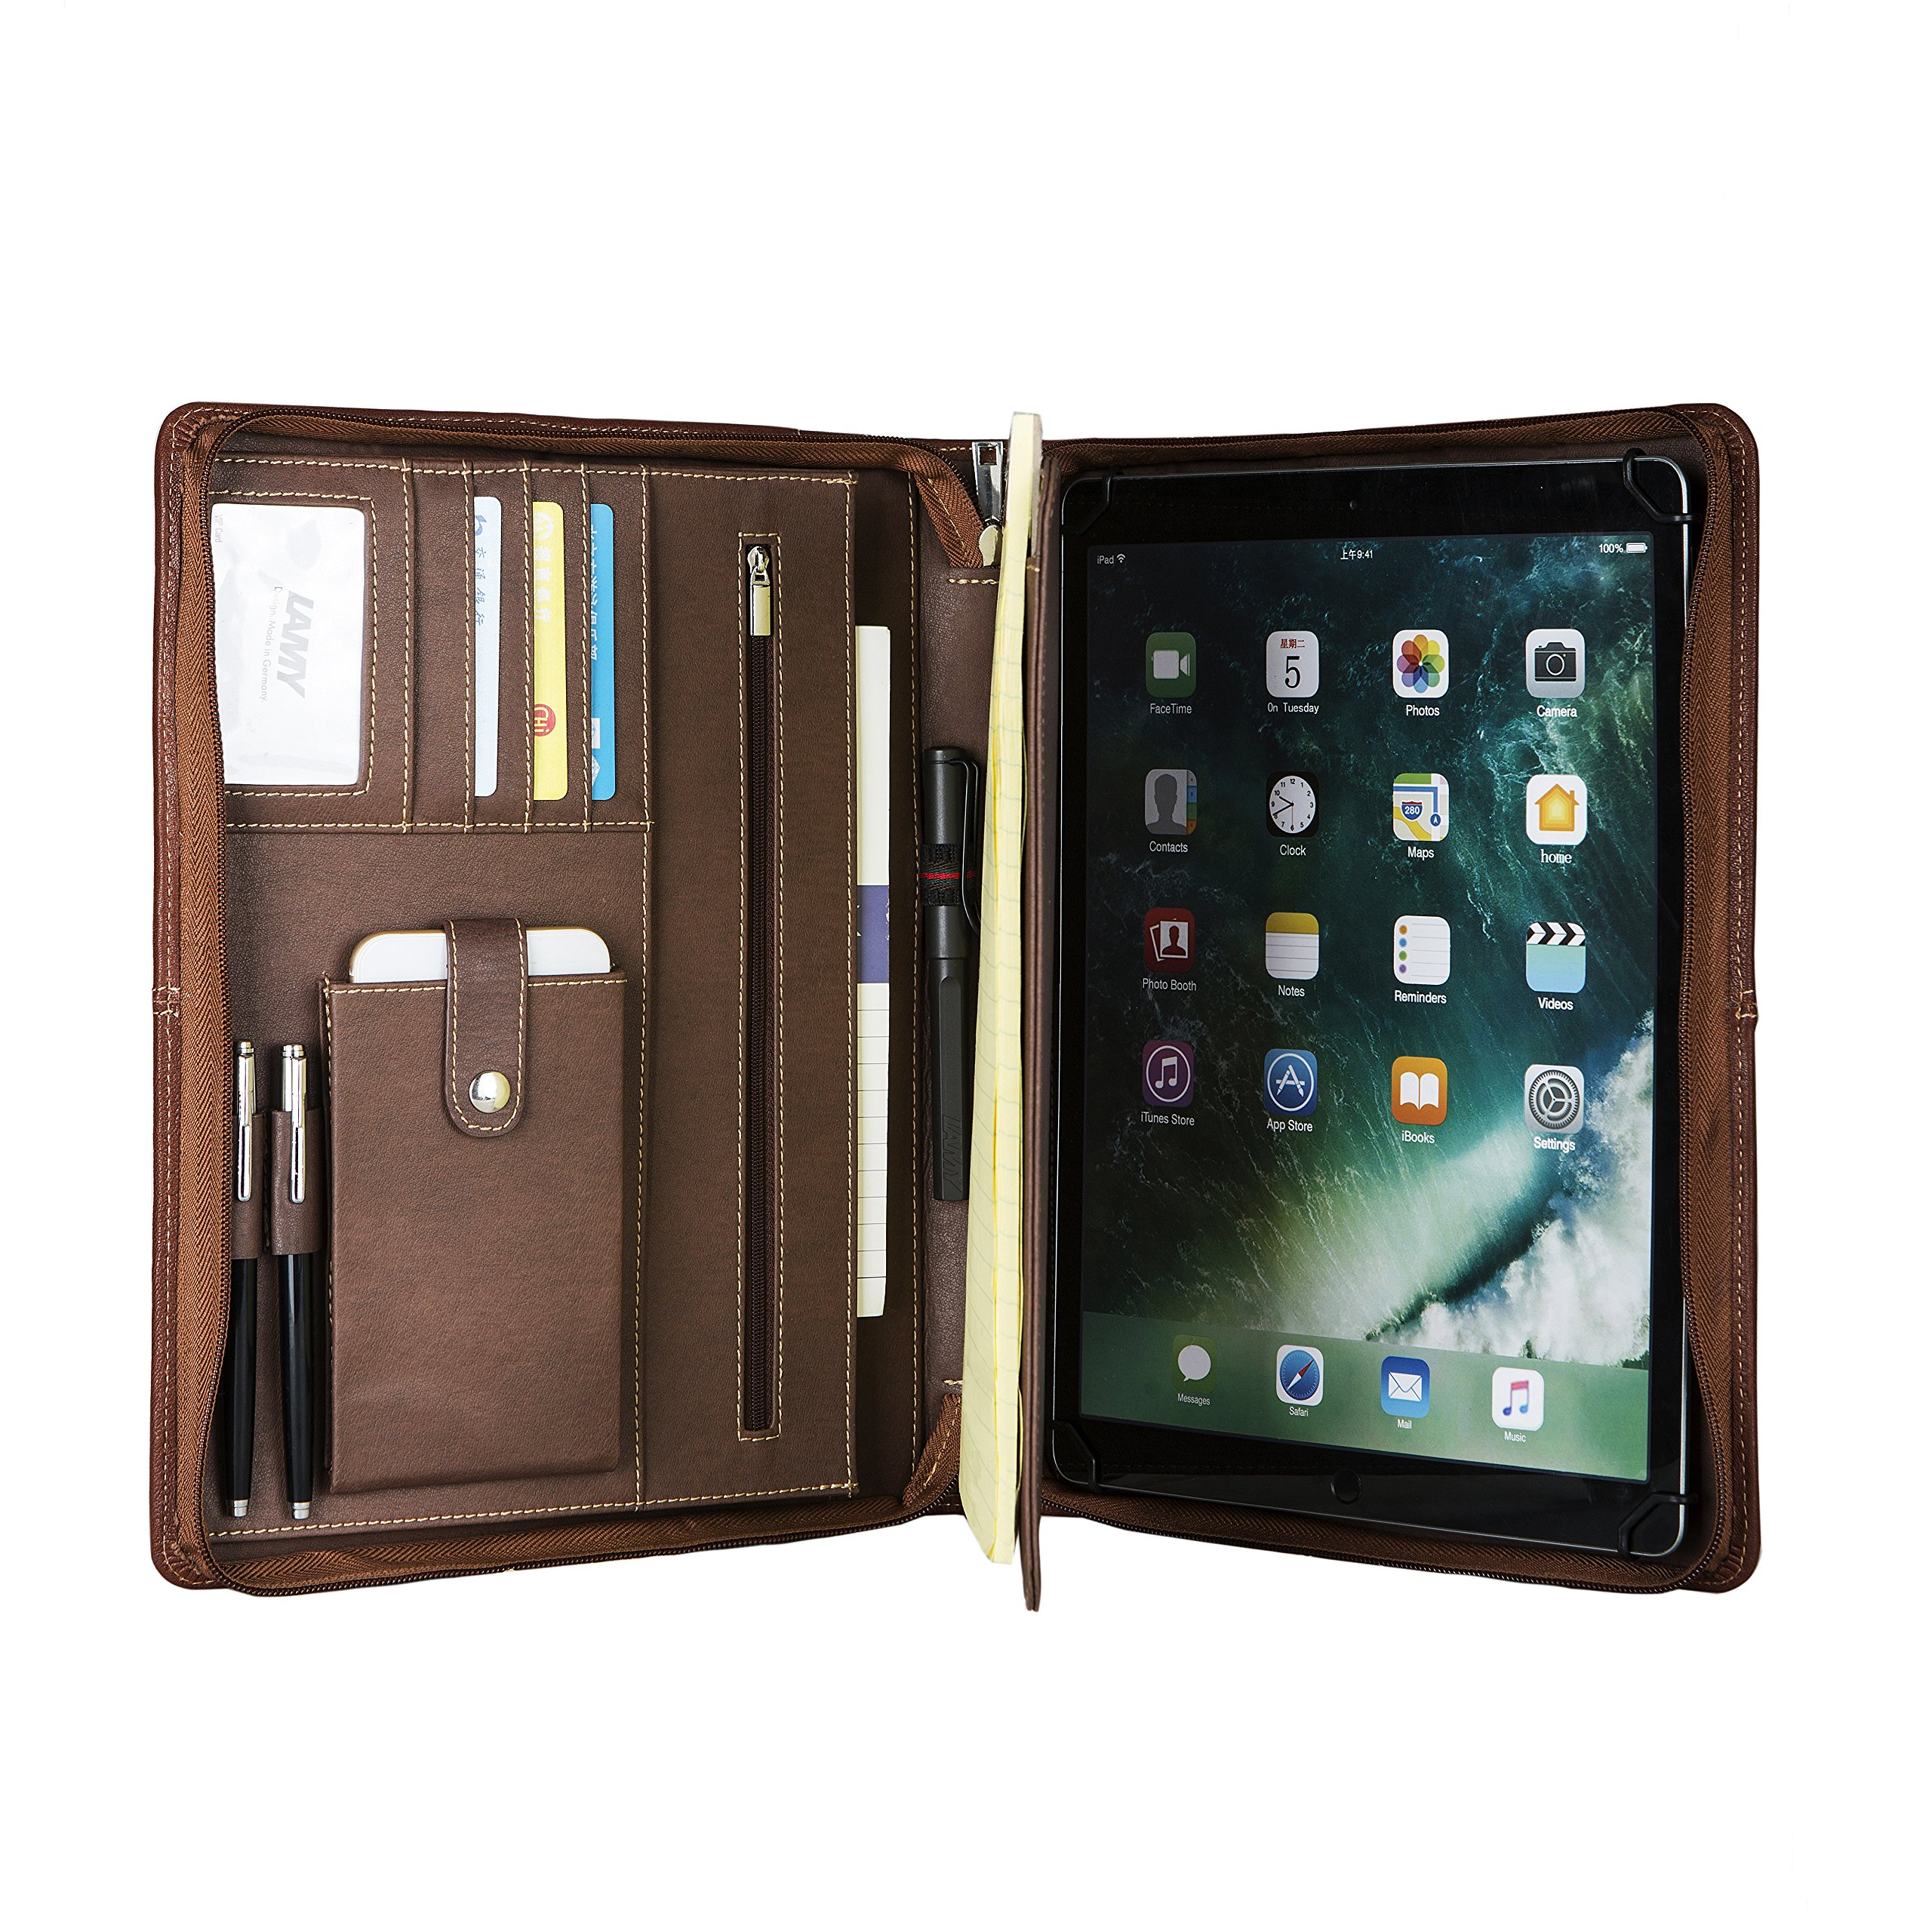 Coface Professional Interview Zipper Portfolio Binder, Office Organizer Document Holder Padfolio, Business Folder by Genuine Leather with Handle for iPad, Engraved Custom Monogrammed